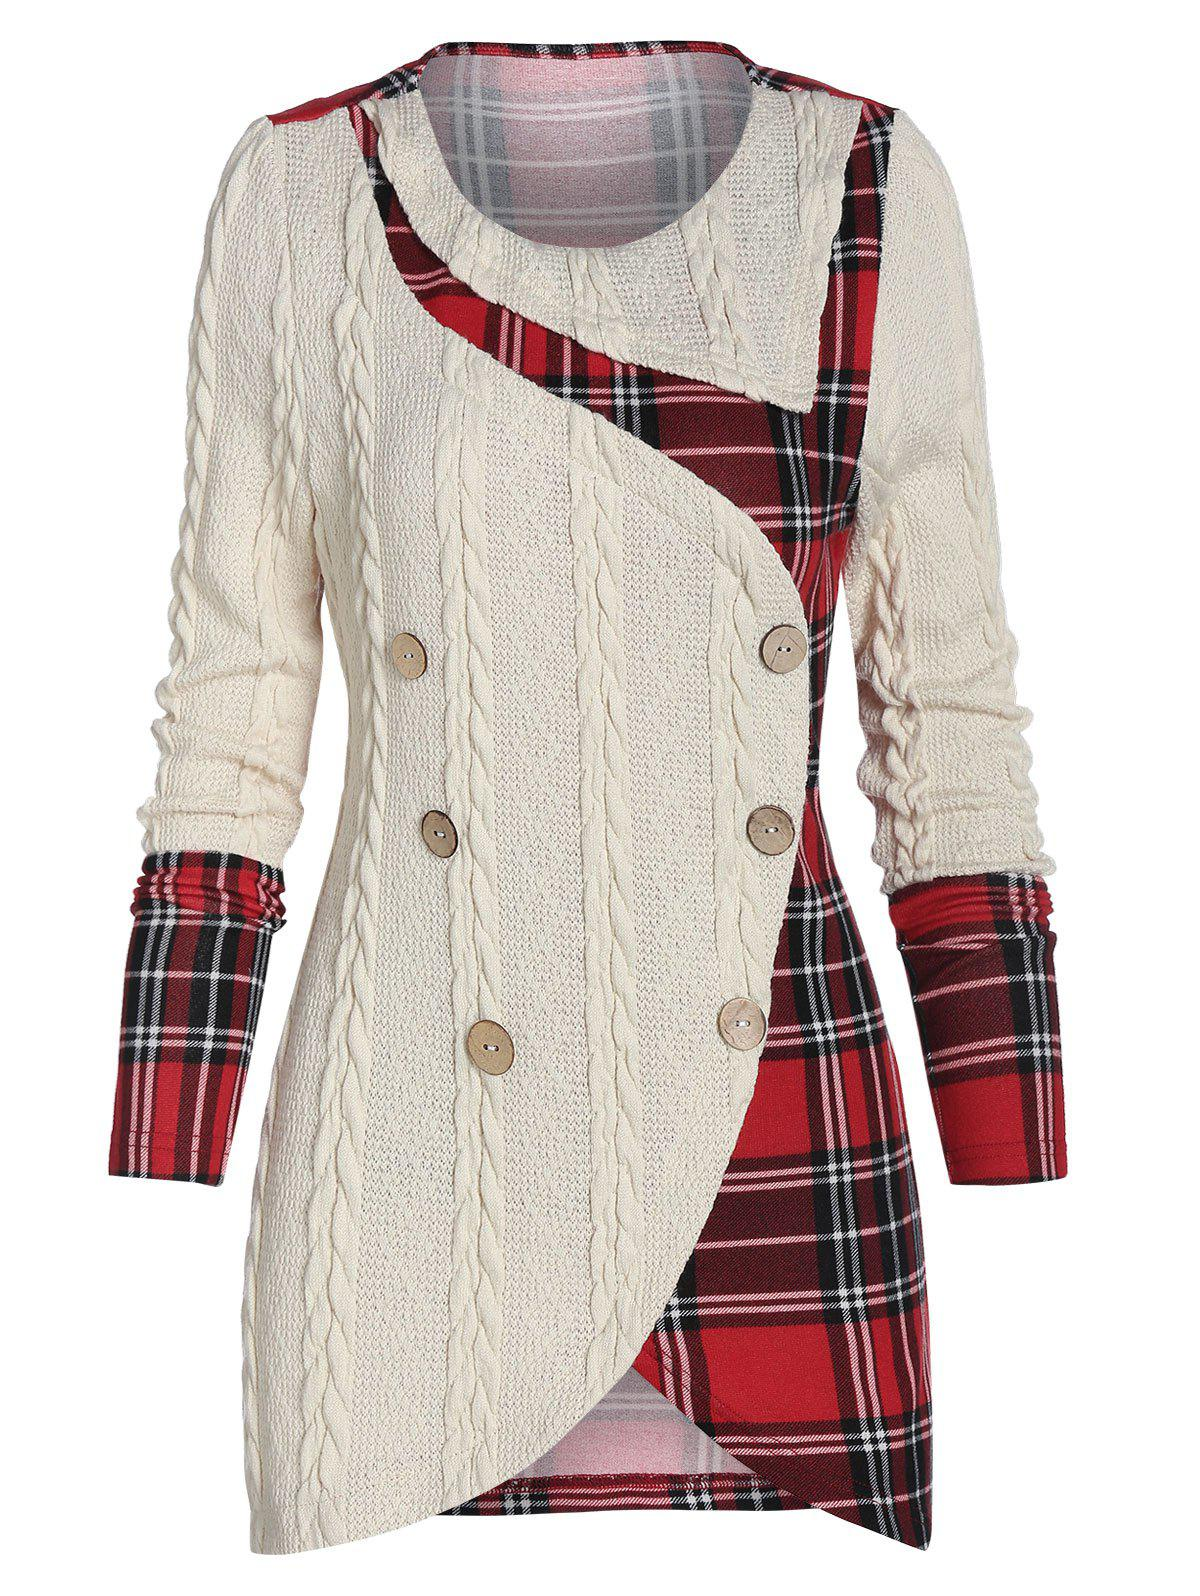 Plaid Panel Mock Button High Low Sweater - multicolor 3XL